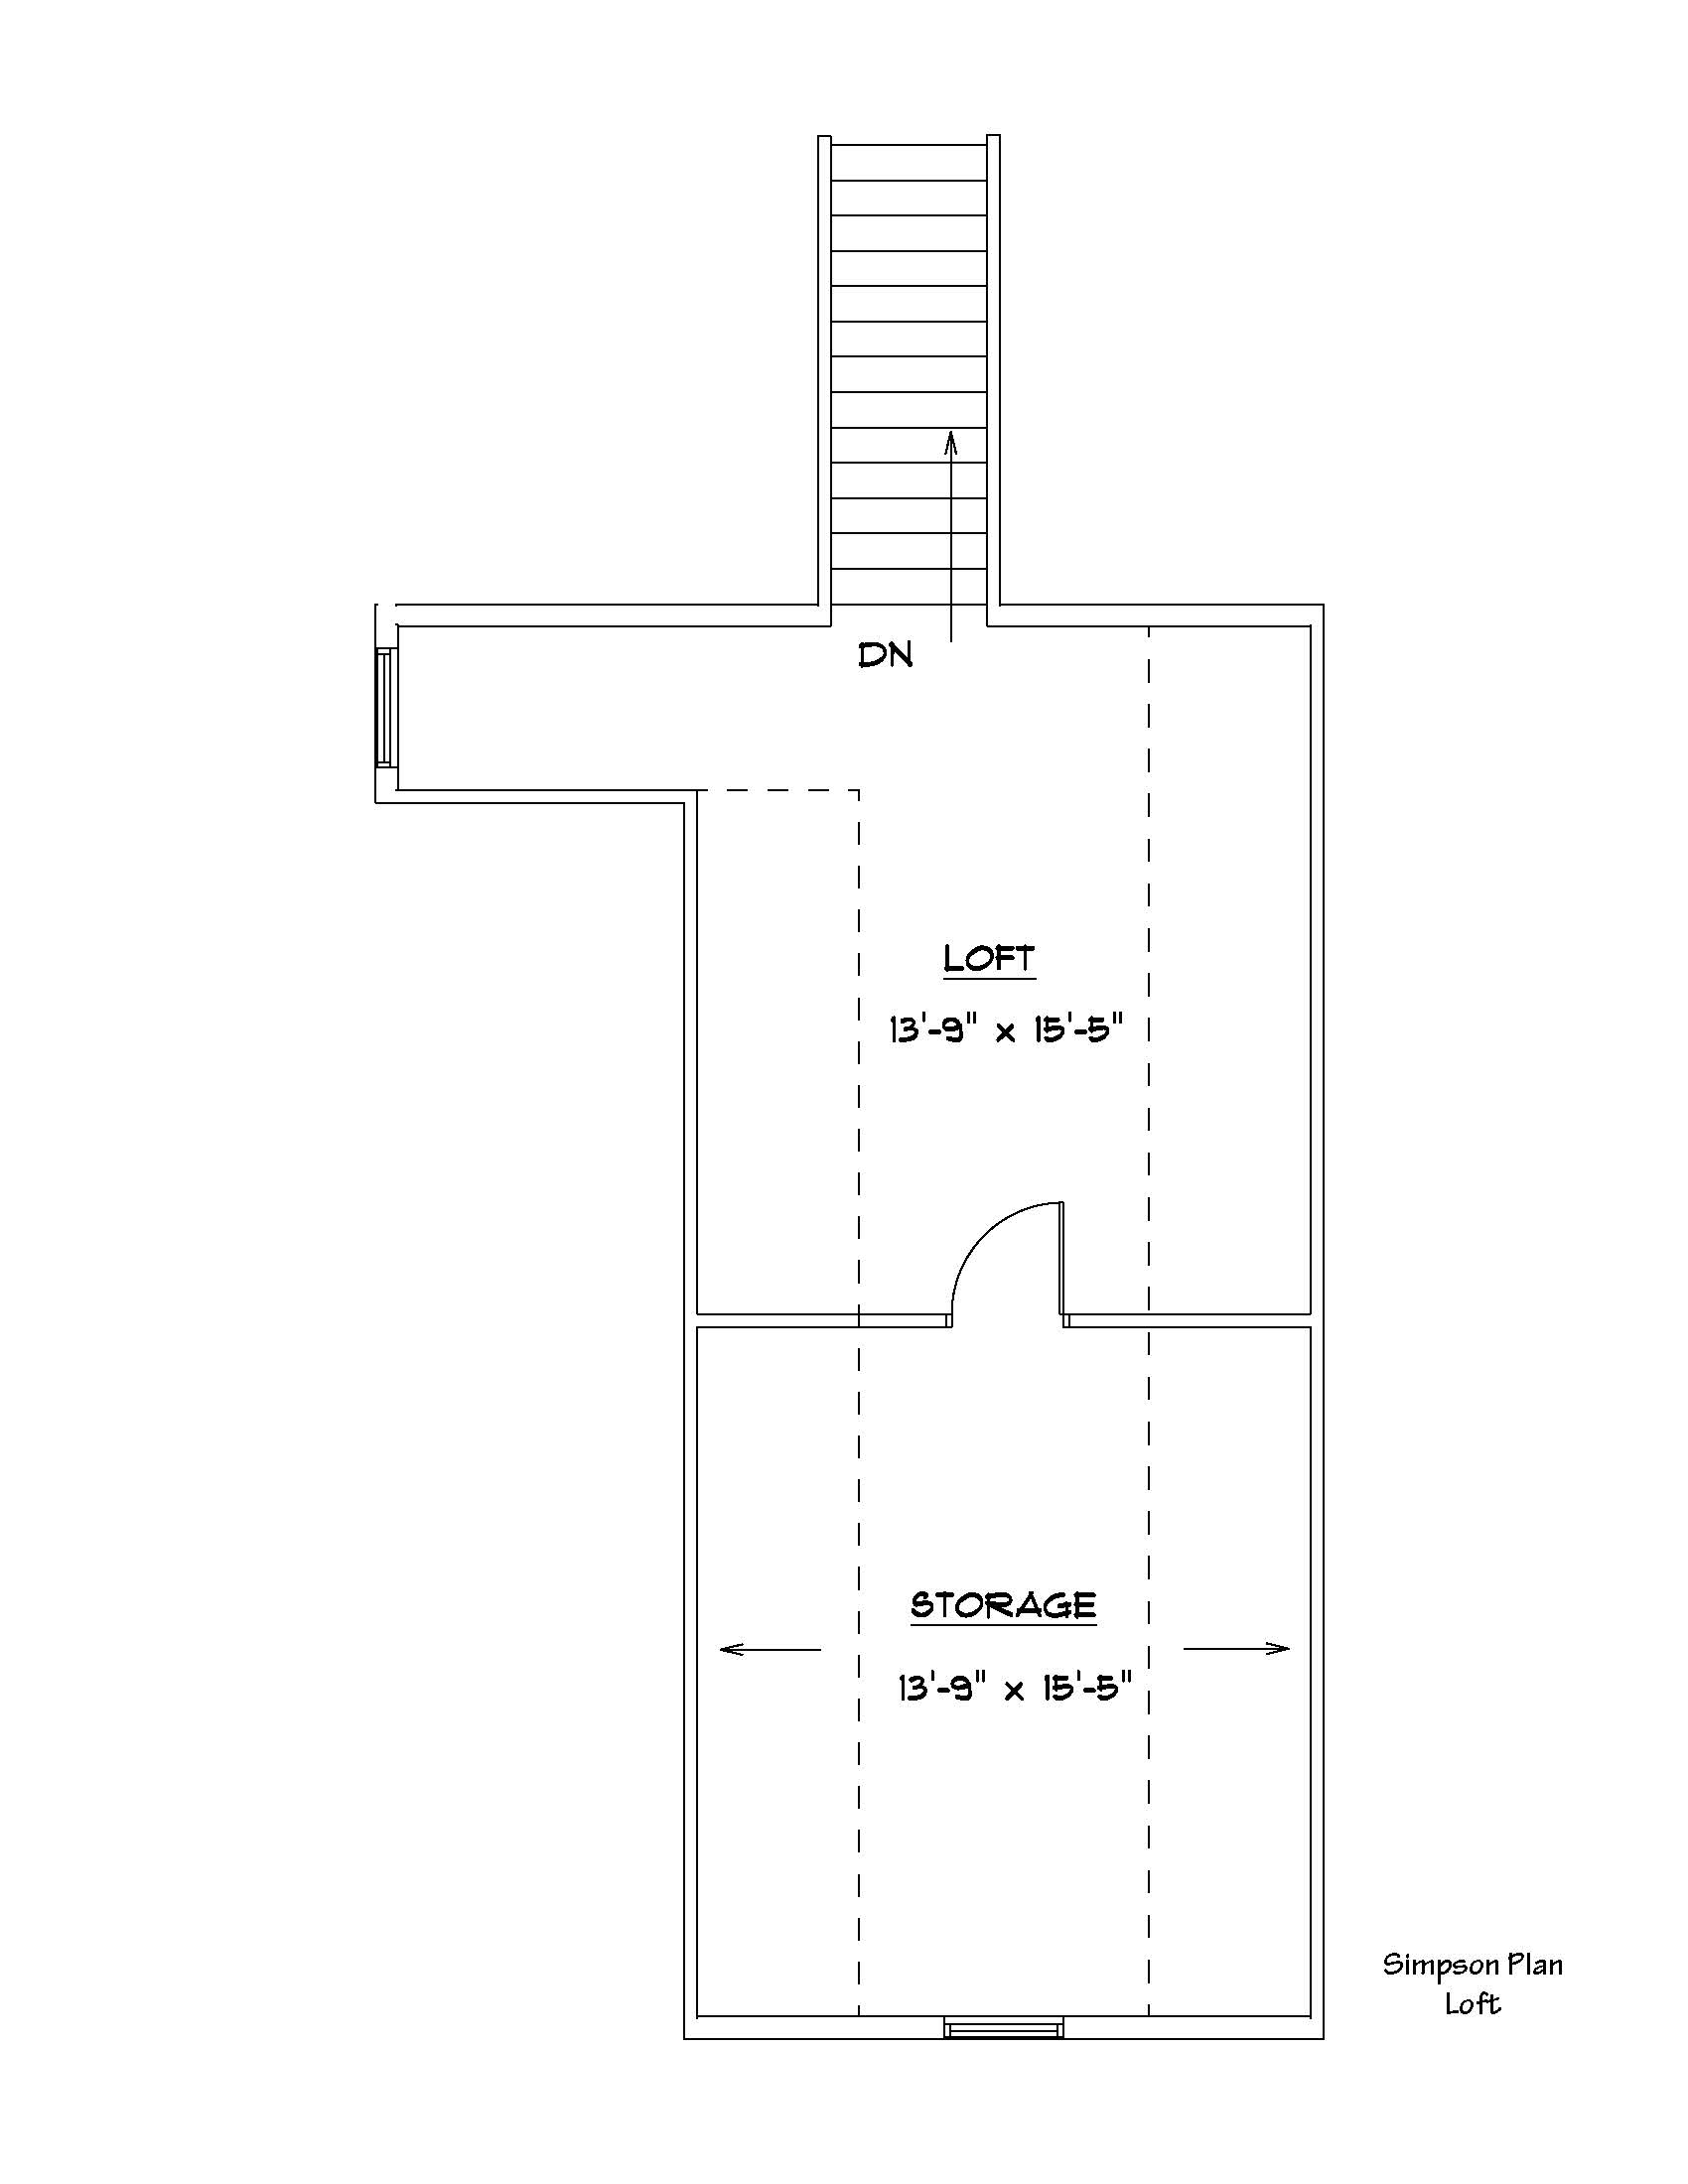 Simpson Loft Plan brochure.jpg